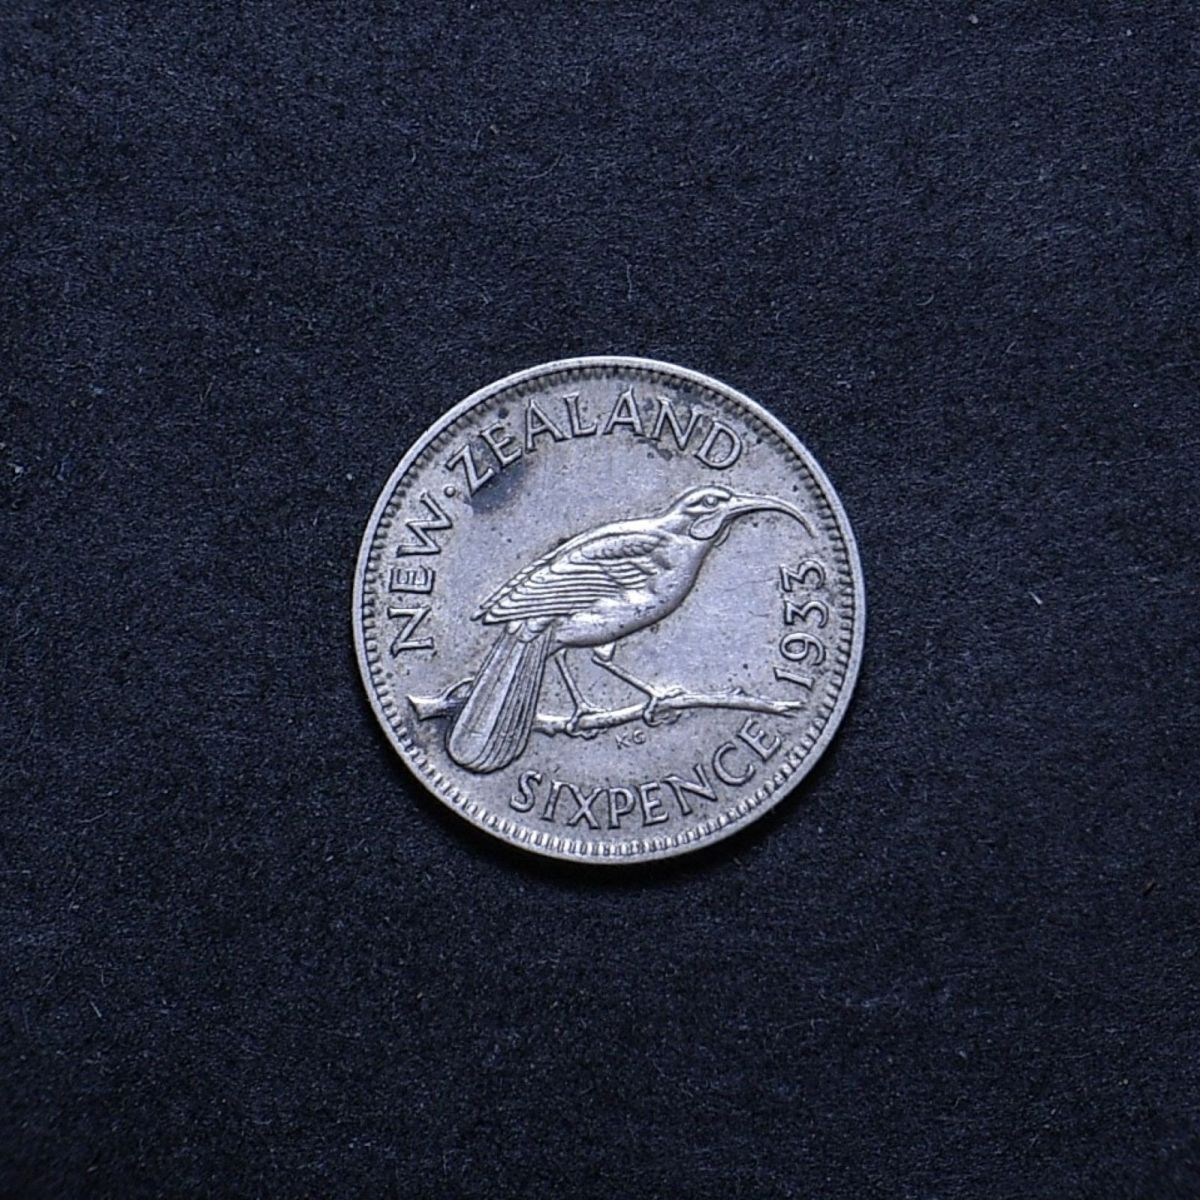 NZ 6d 1933 reverse showing overall appearance